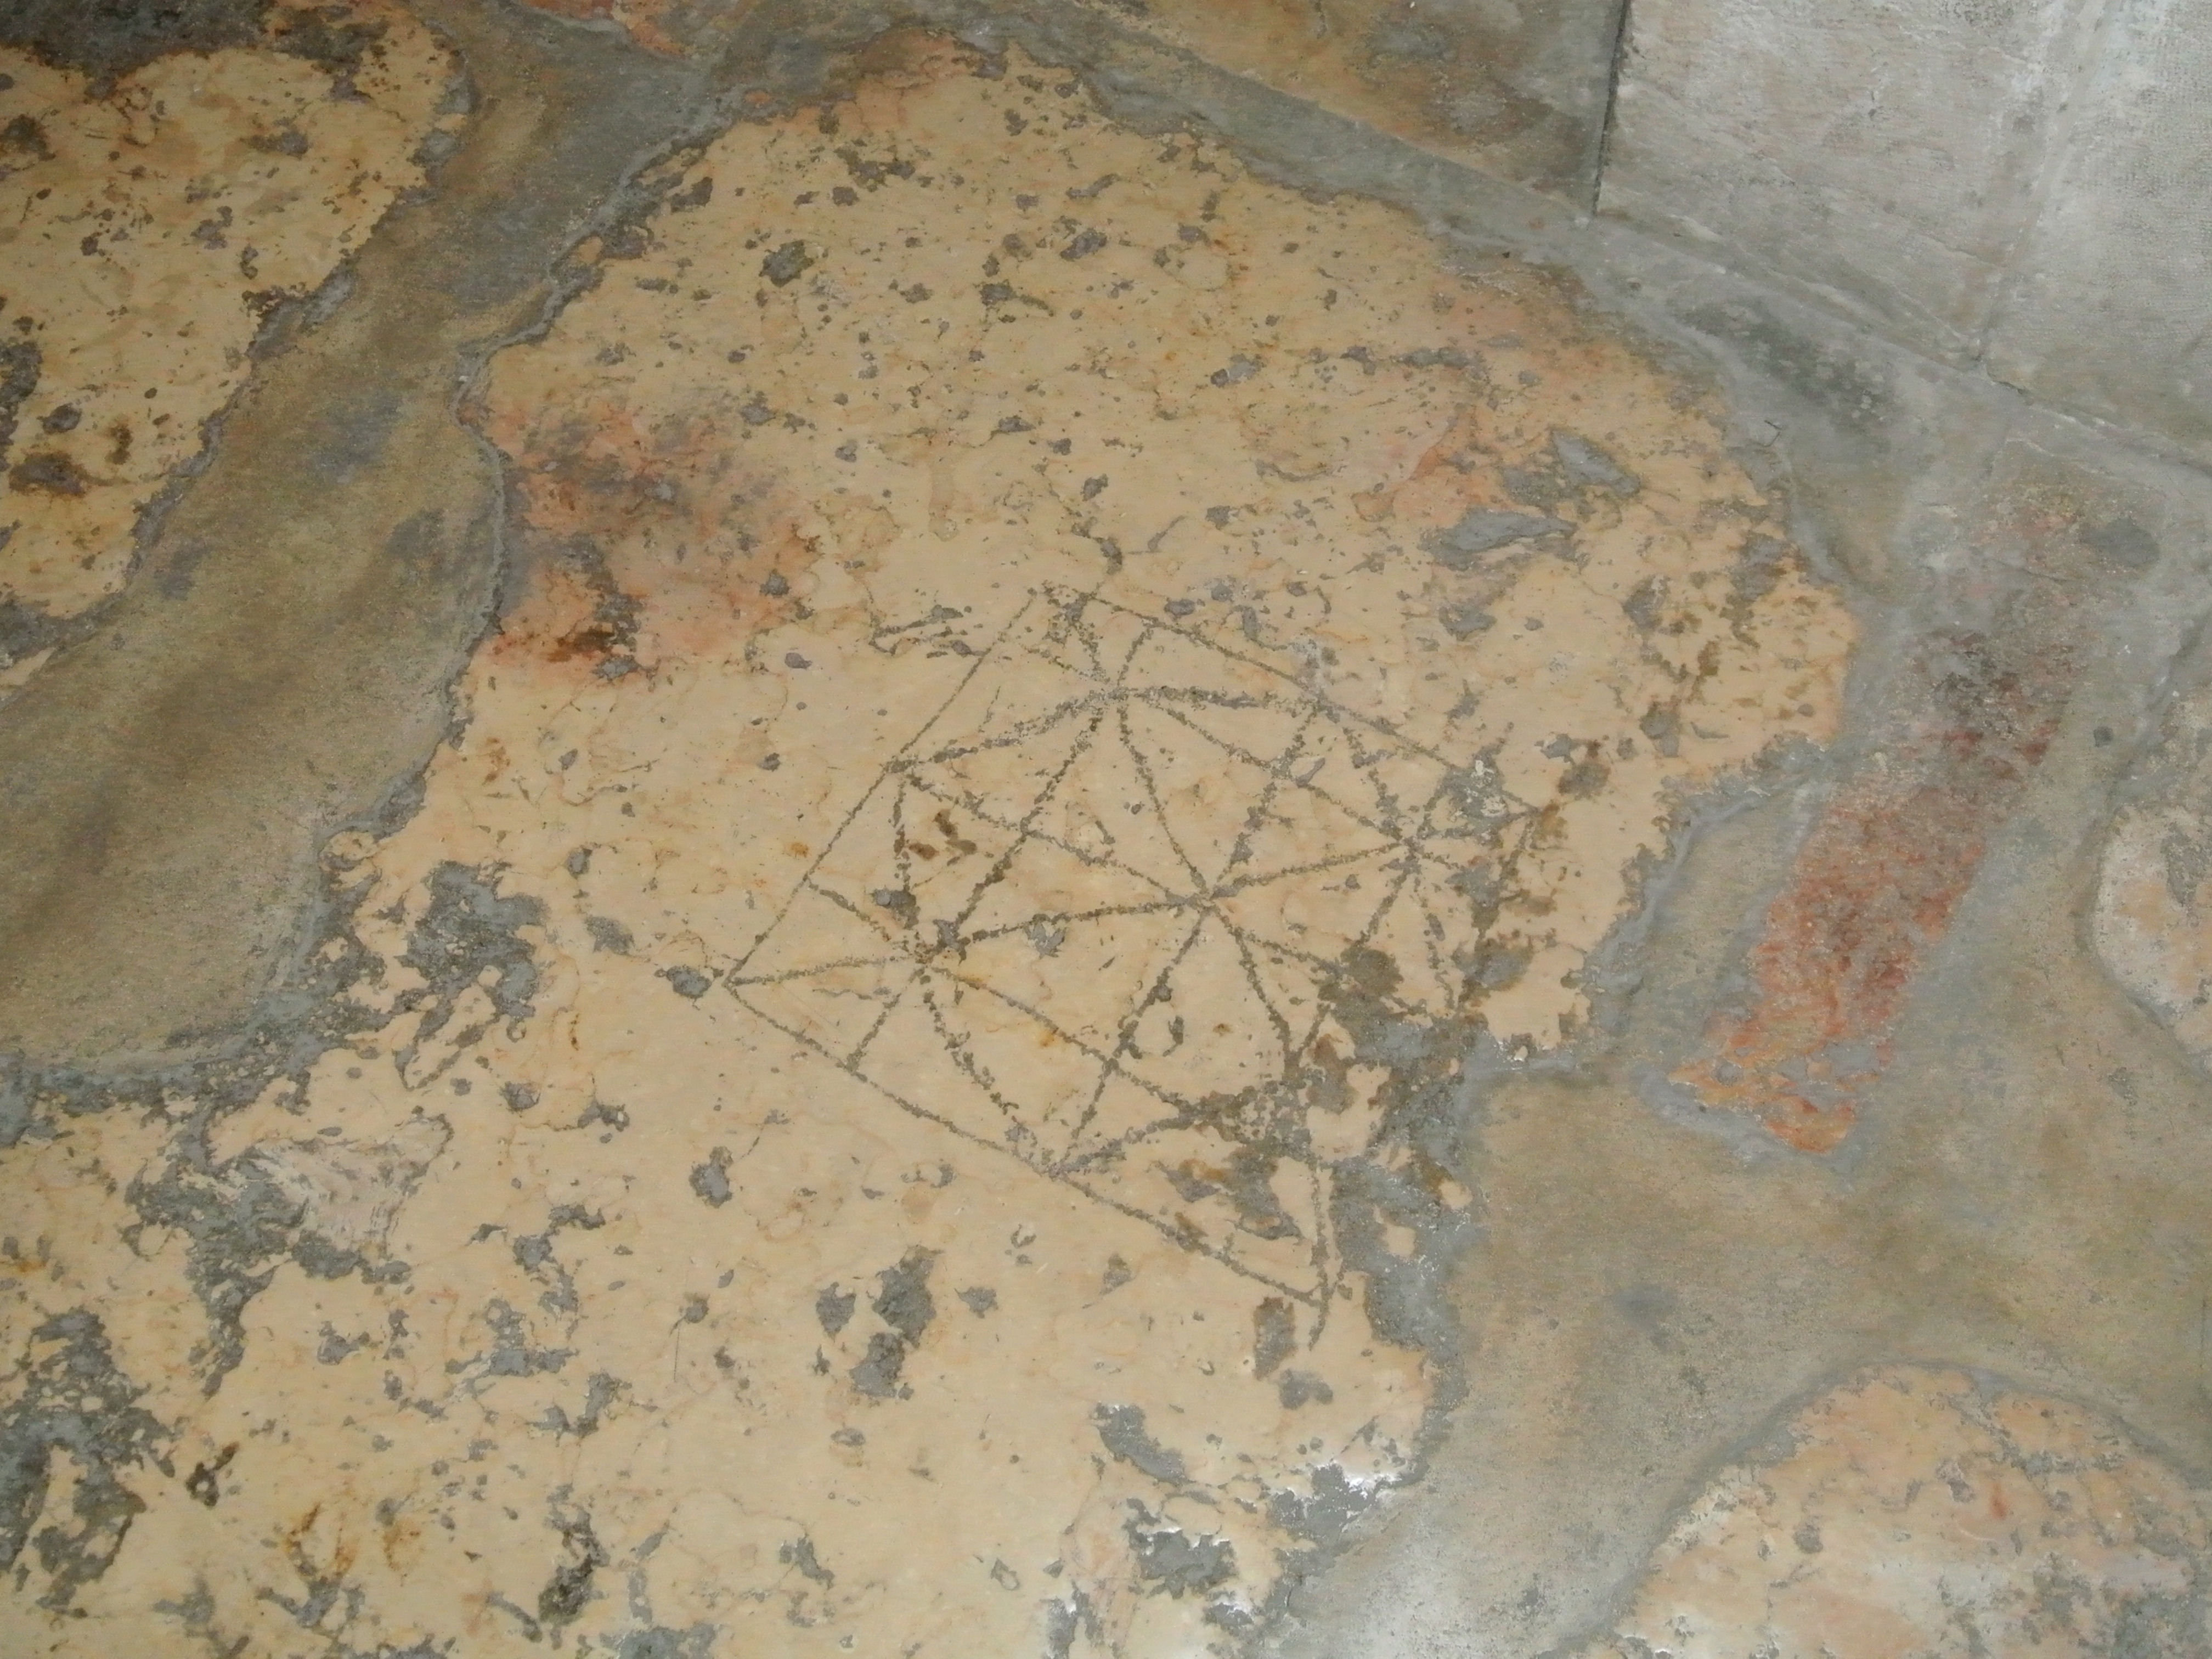 Alquerque in the Church of the Condemnation, Jerusalem, Israel. Carved pavement stones are from the Roman period, 2nd century CE, incorporated into the building of the church, built in 1903-1904, on the ruins of an older 13th century church. Photo: Katelyn Doran, July 6, 2012.